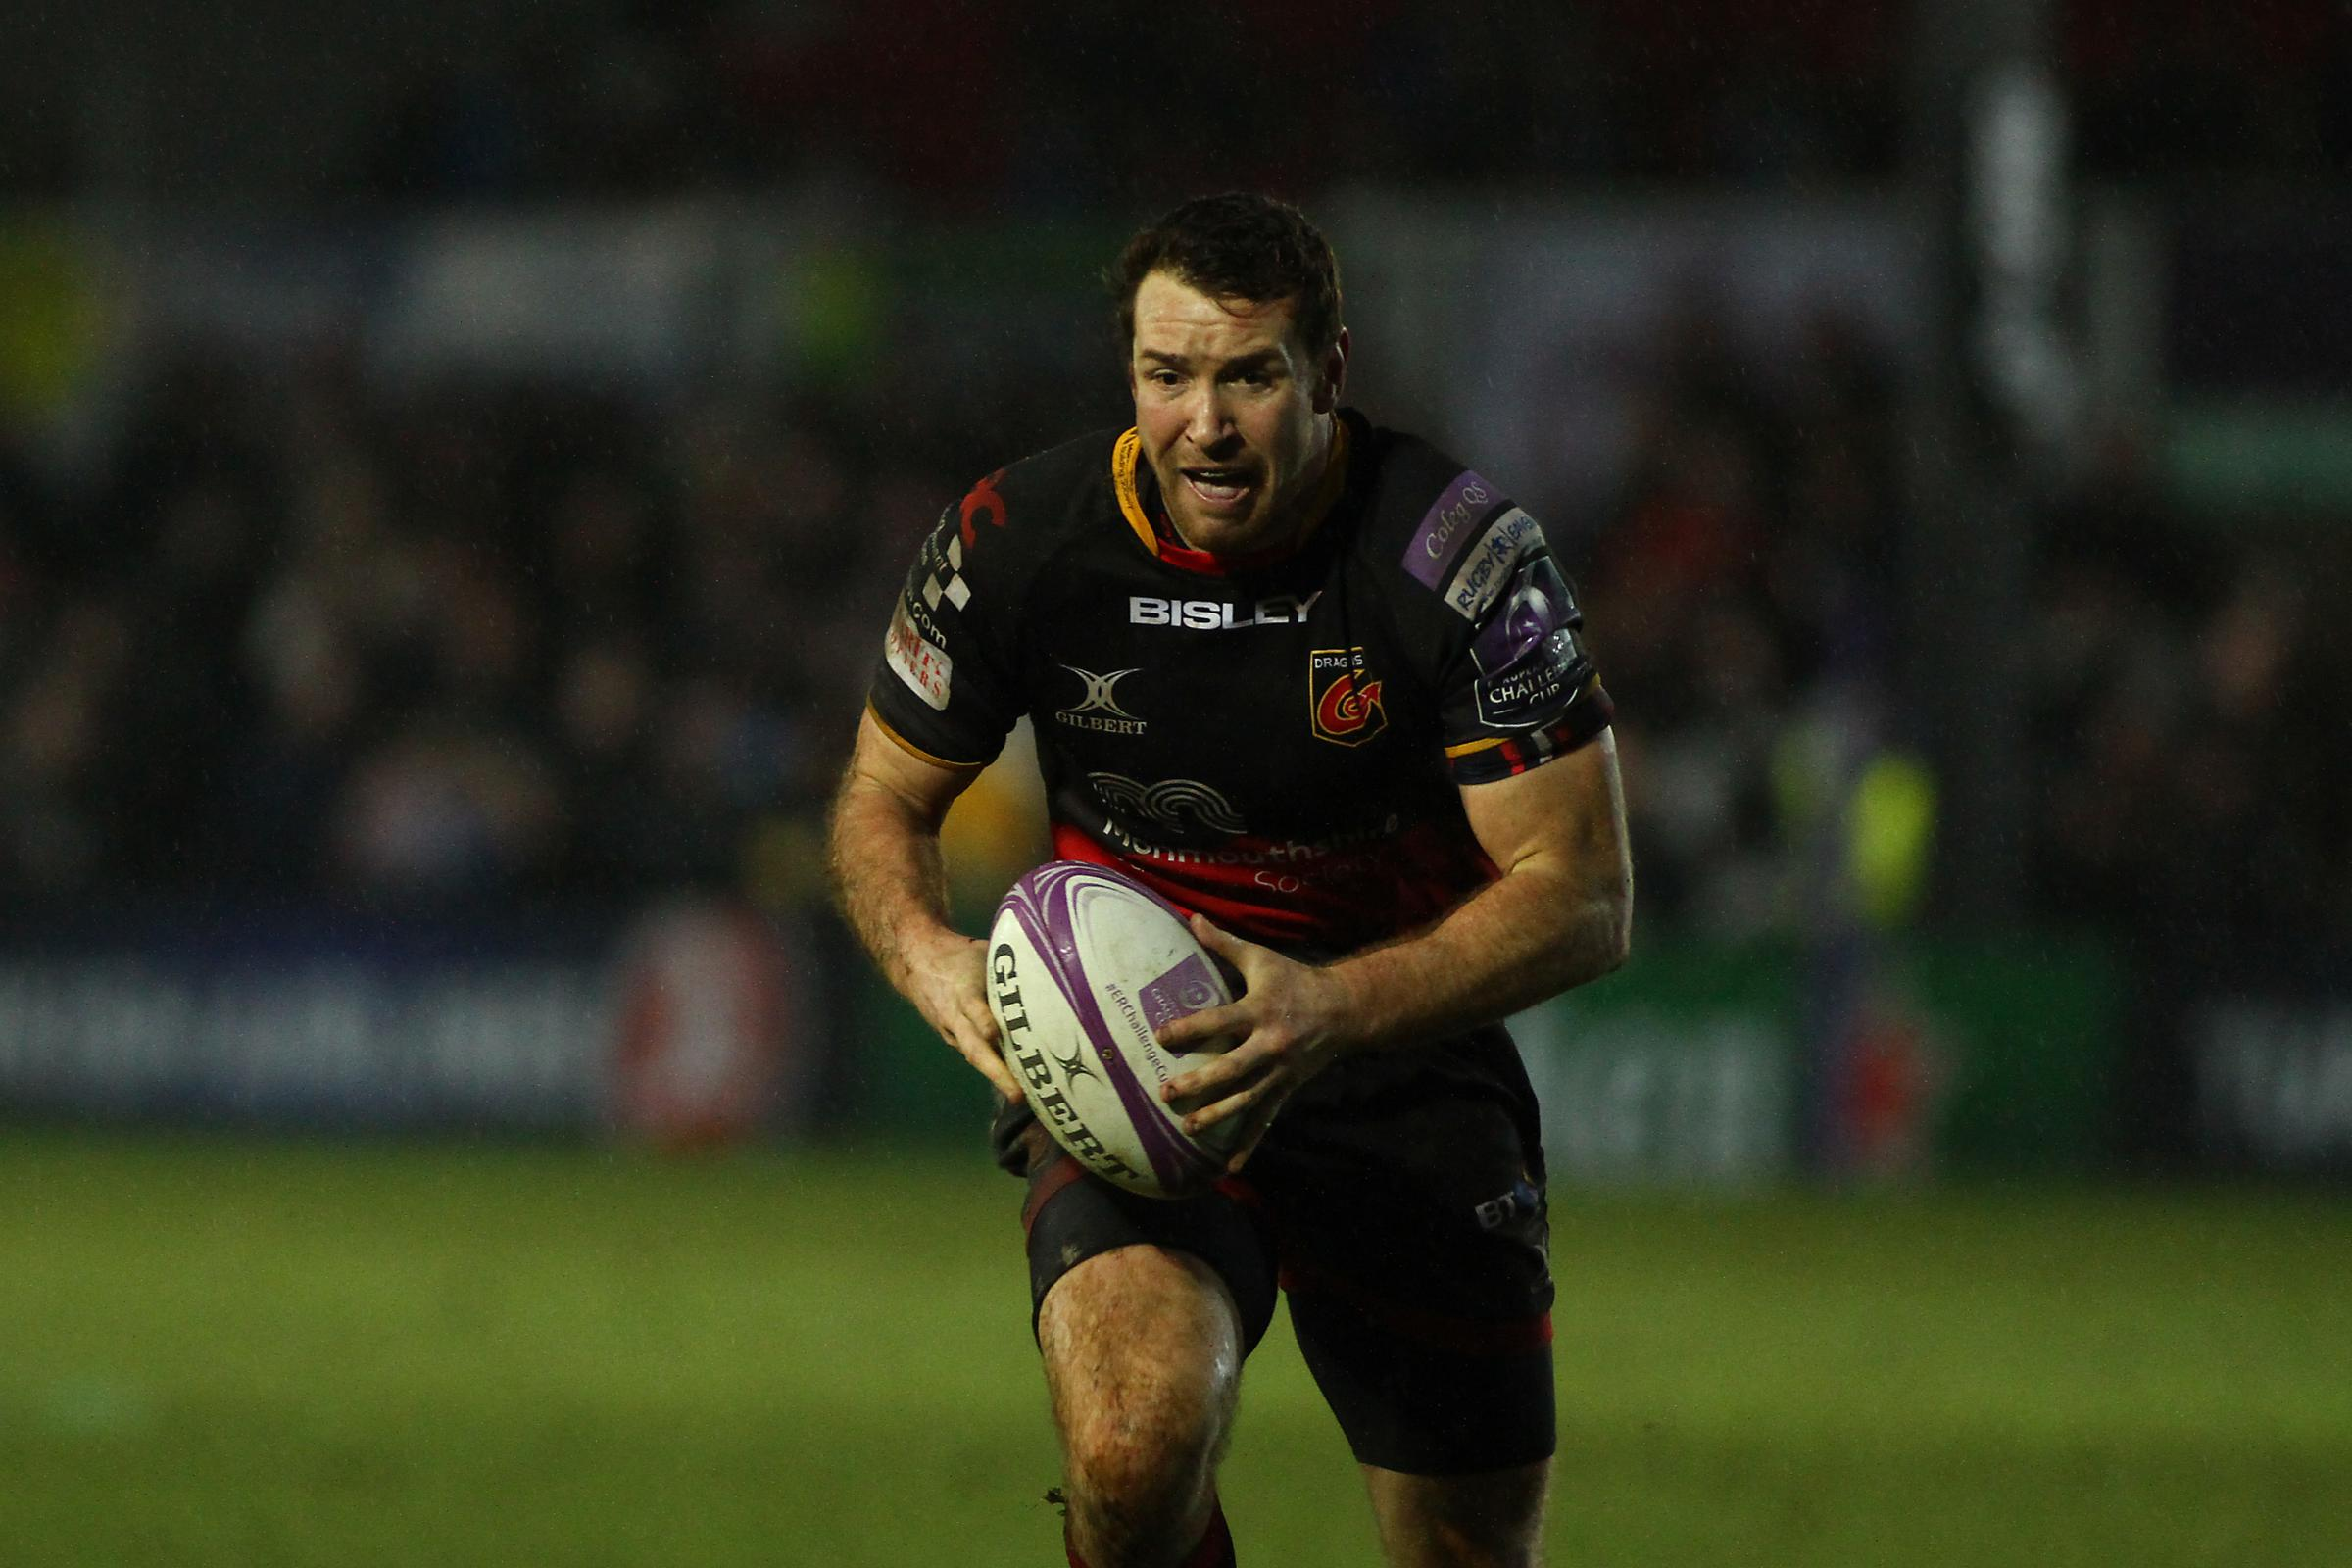 20.01.18 Dragons v Union Bordeaux Begles - European Rugby Challenge Cup -.Adam Warren of Dragons.